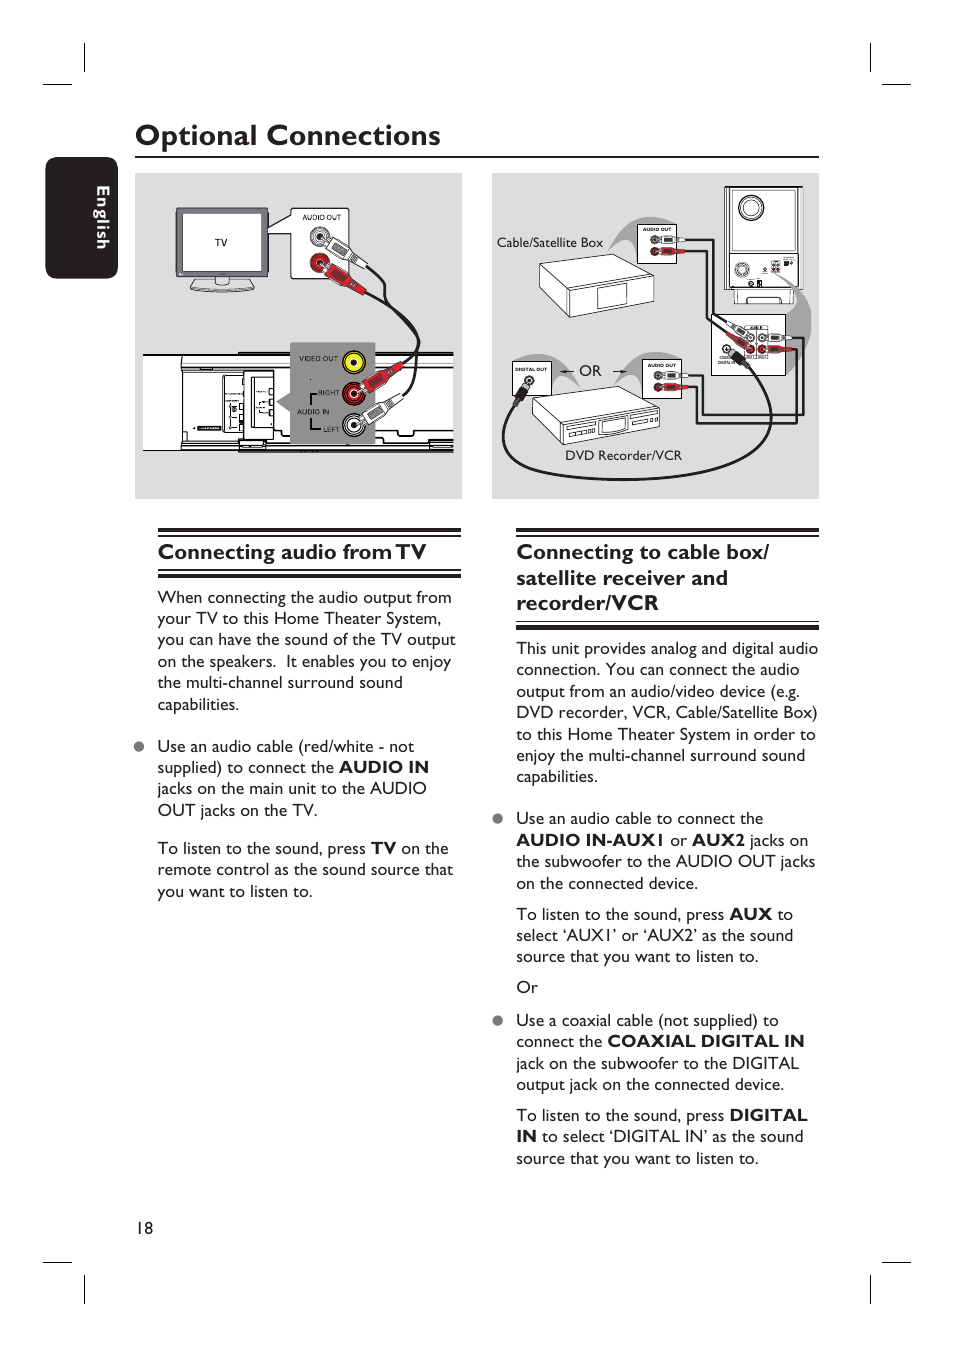 Optional Connections Connecting Audio From Tv 18 English Philips Home Theater Wiring With Cable Box Hts8100 37b User Manual Page 57